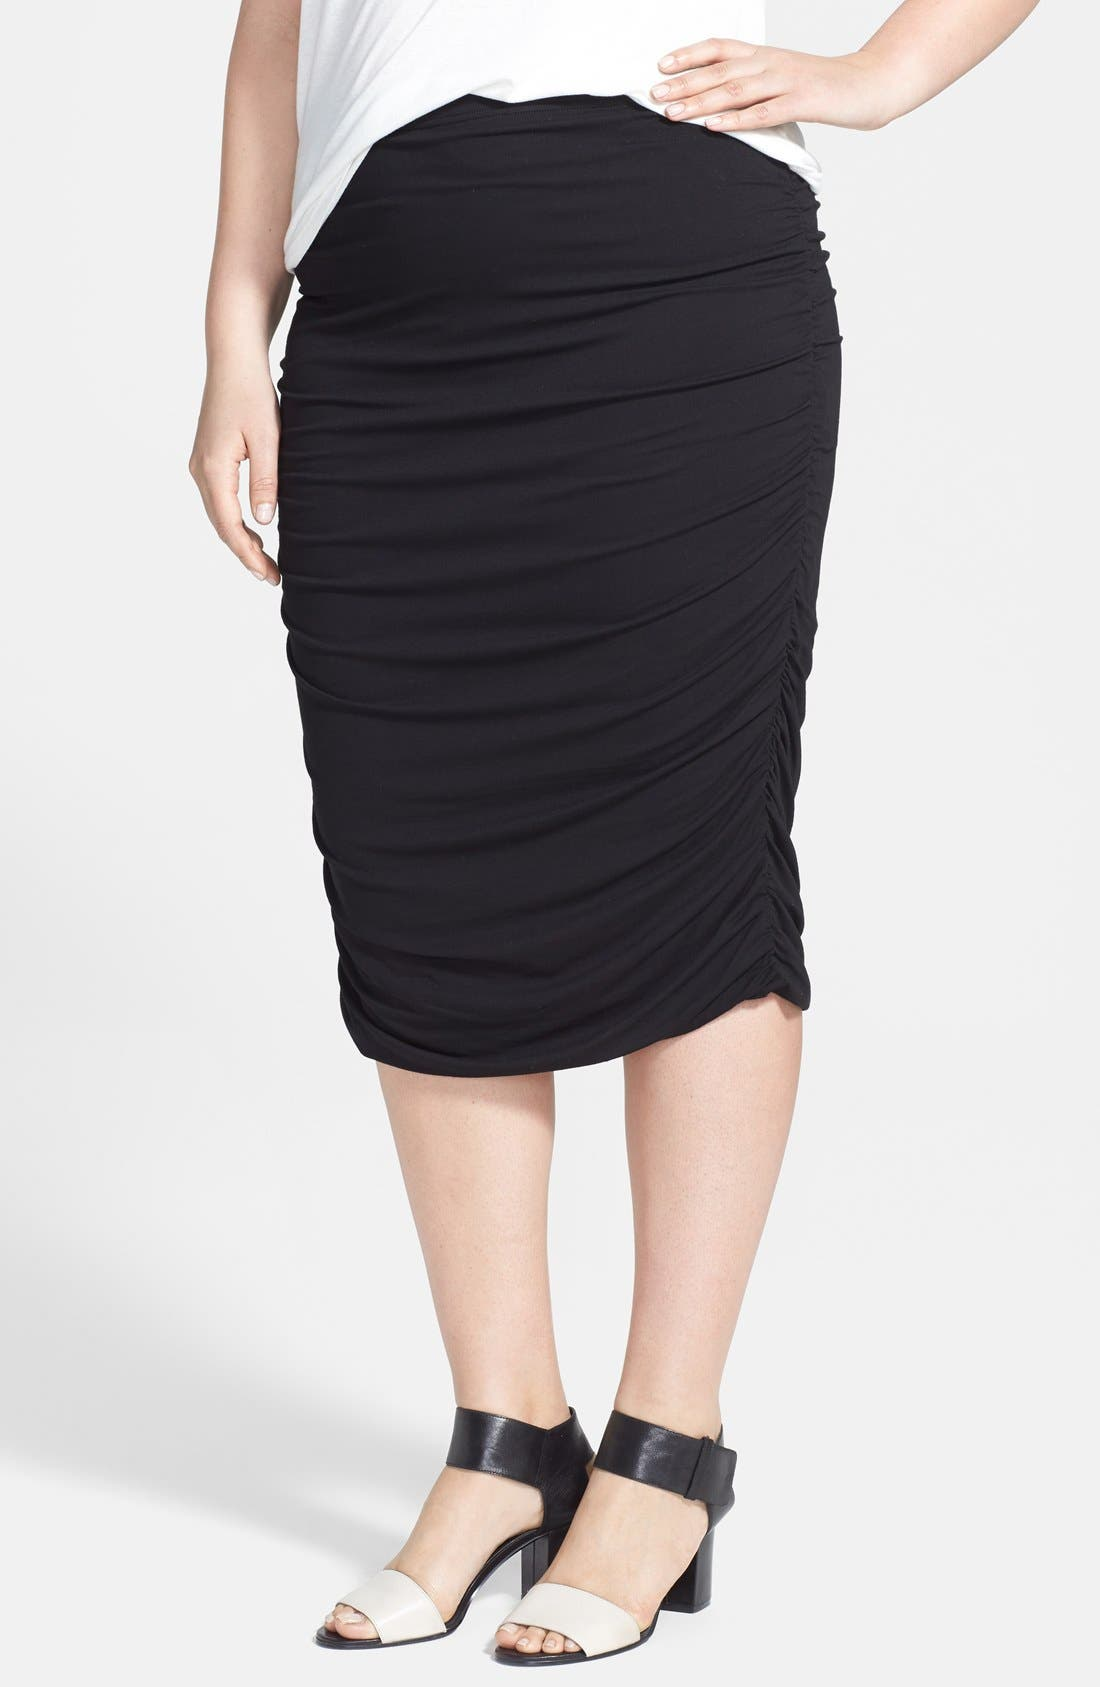 VINCE CAMUTO, Ruched Stretch Knit Midi Skirt, Main thumbnail 1, color, 001